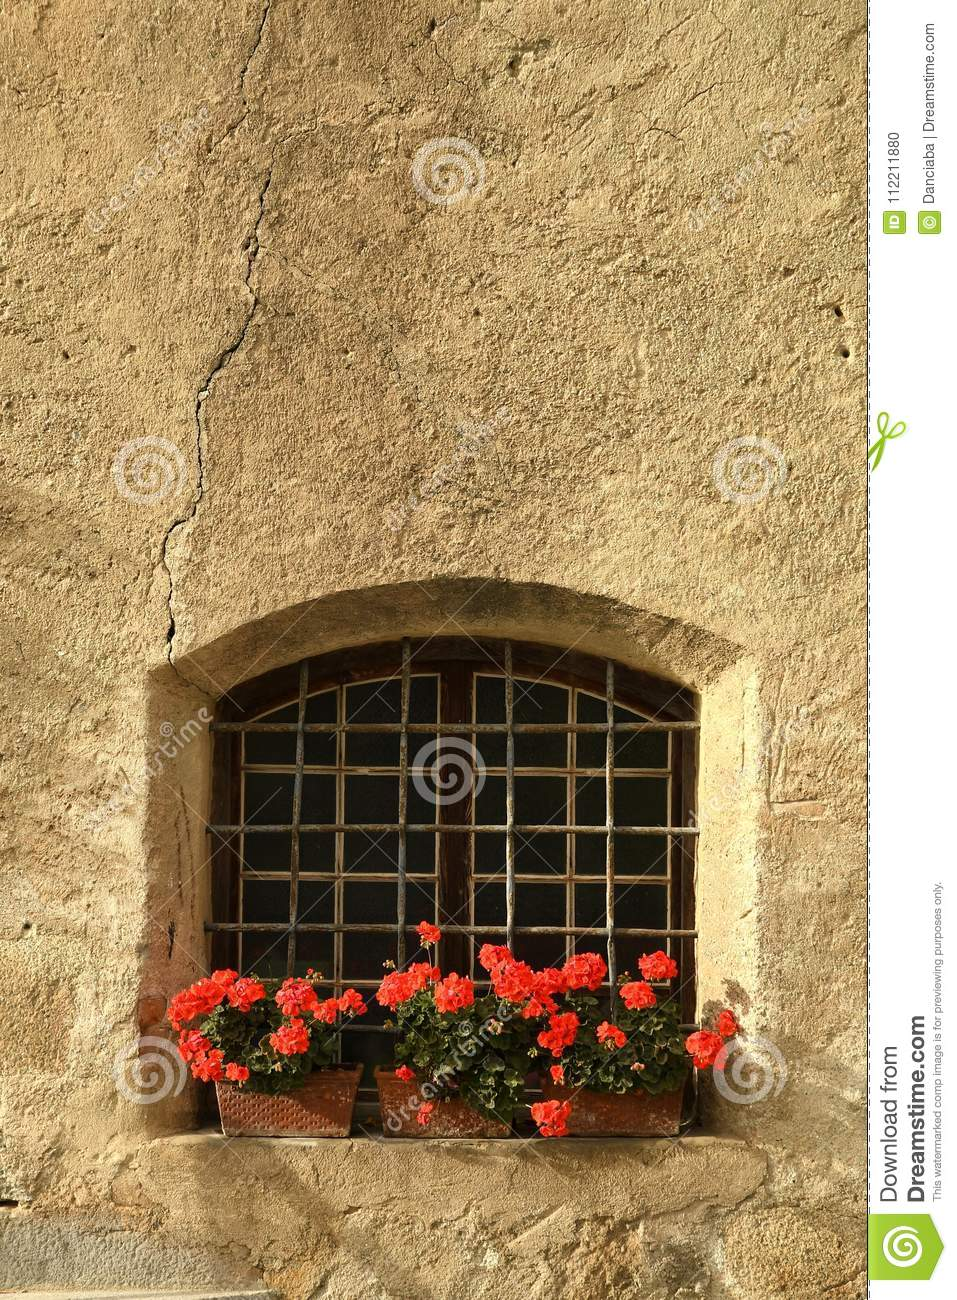 Windows With Red Flowers In The Centre Of Brixen/Bressanone  Bolzano